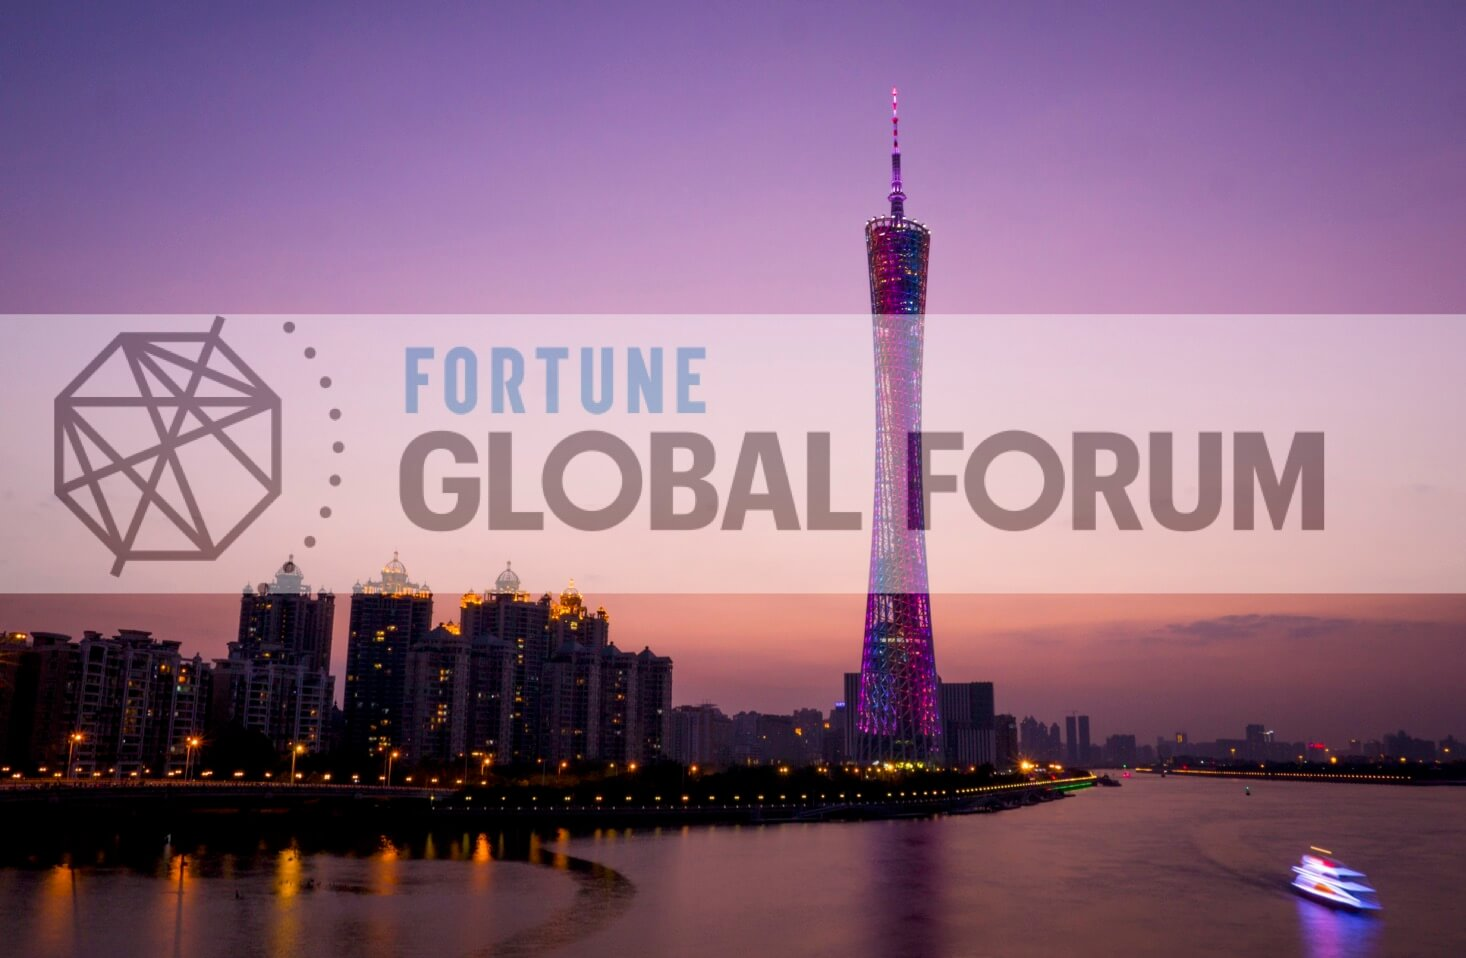 Fortune Global Forum 2017 Guangzhou